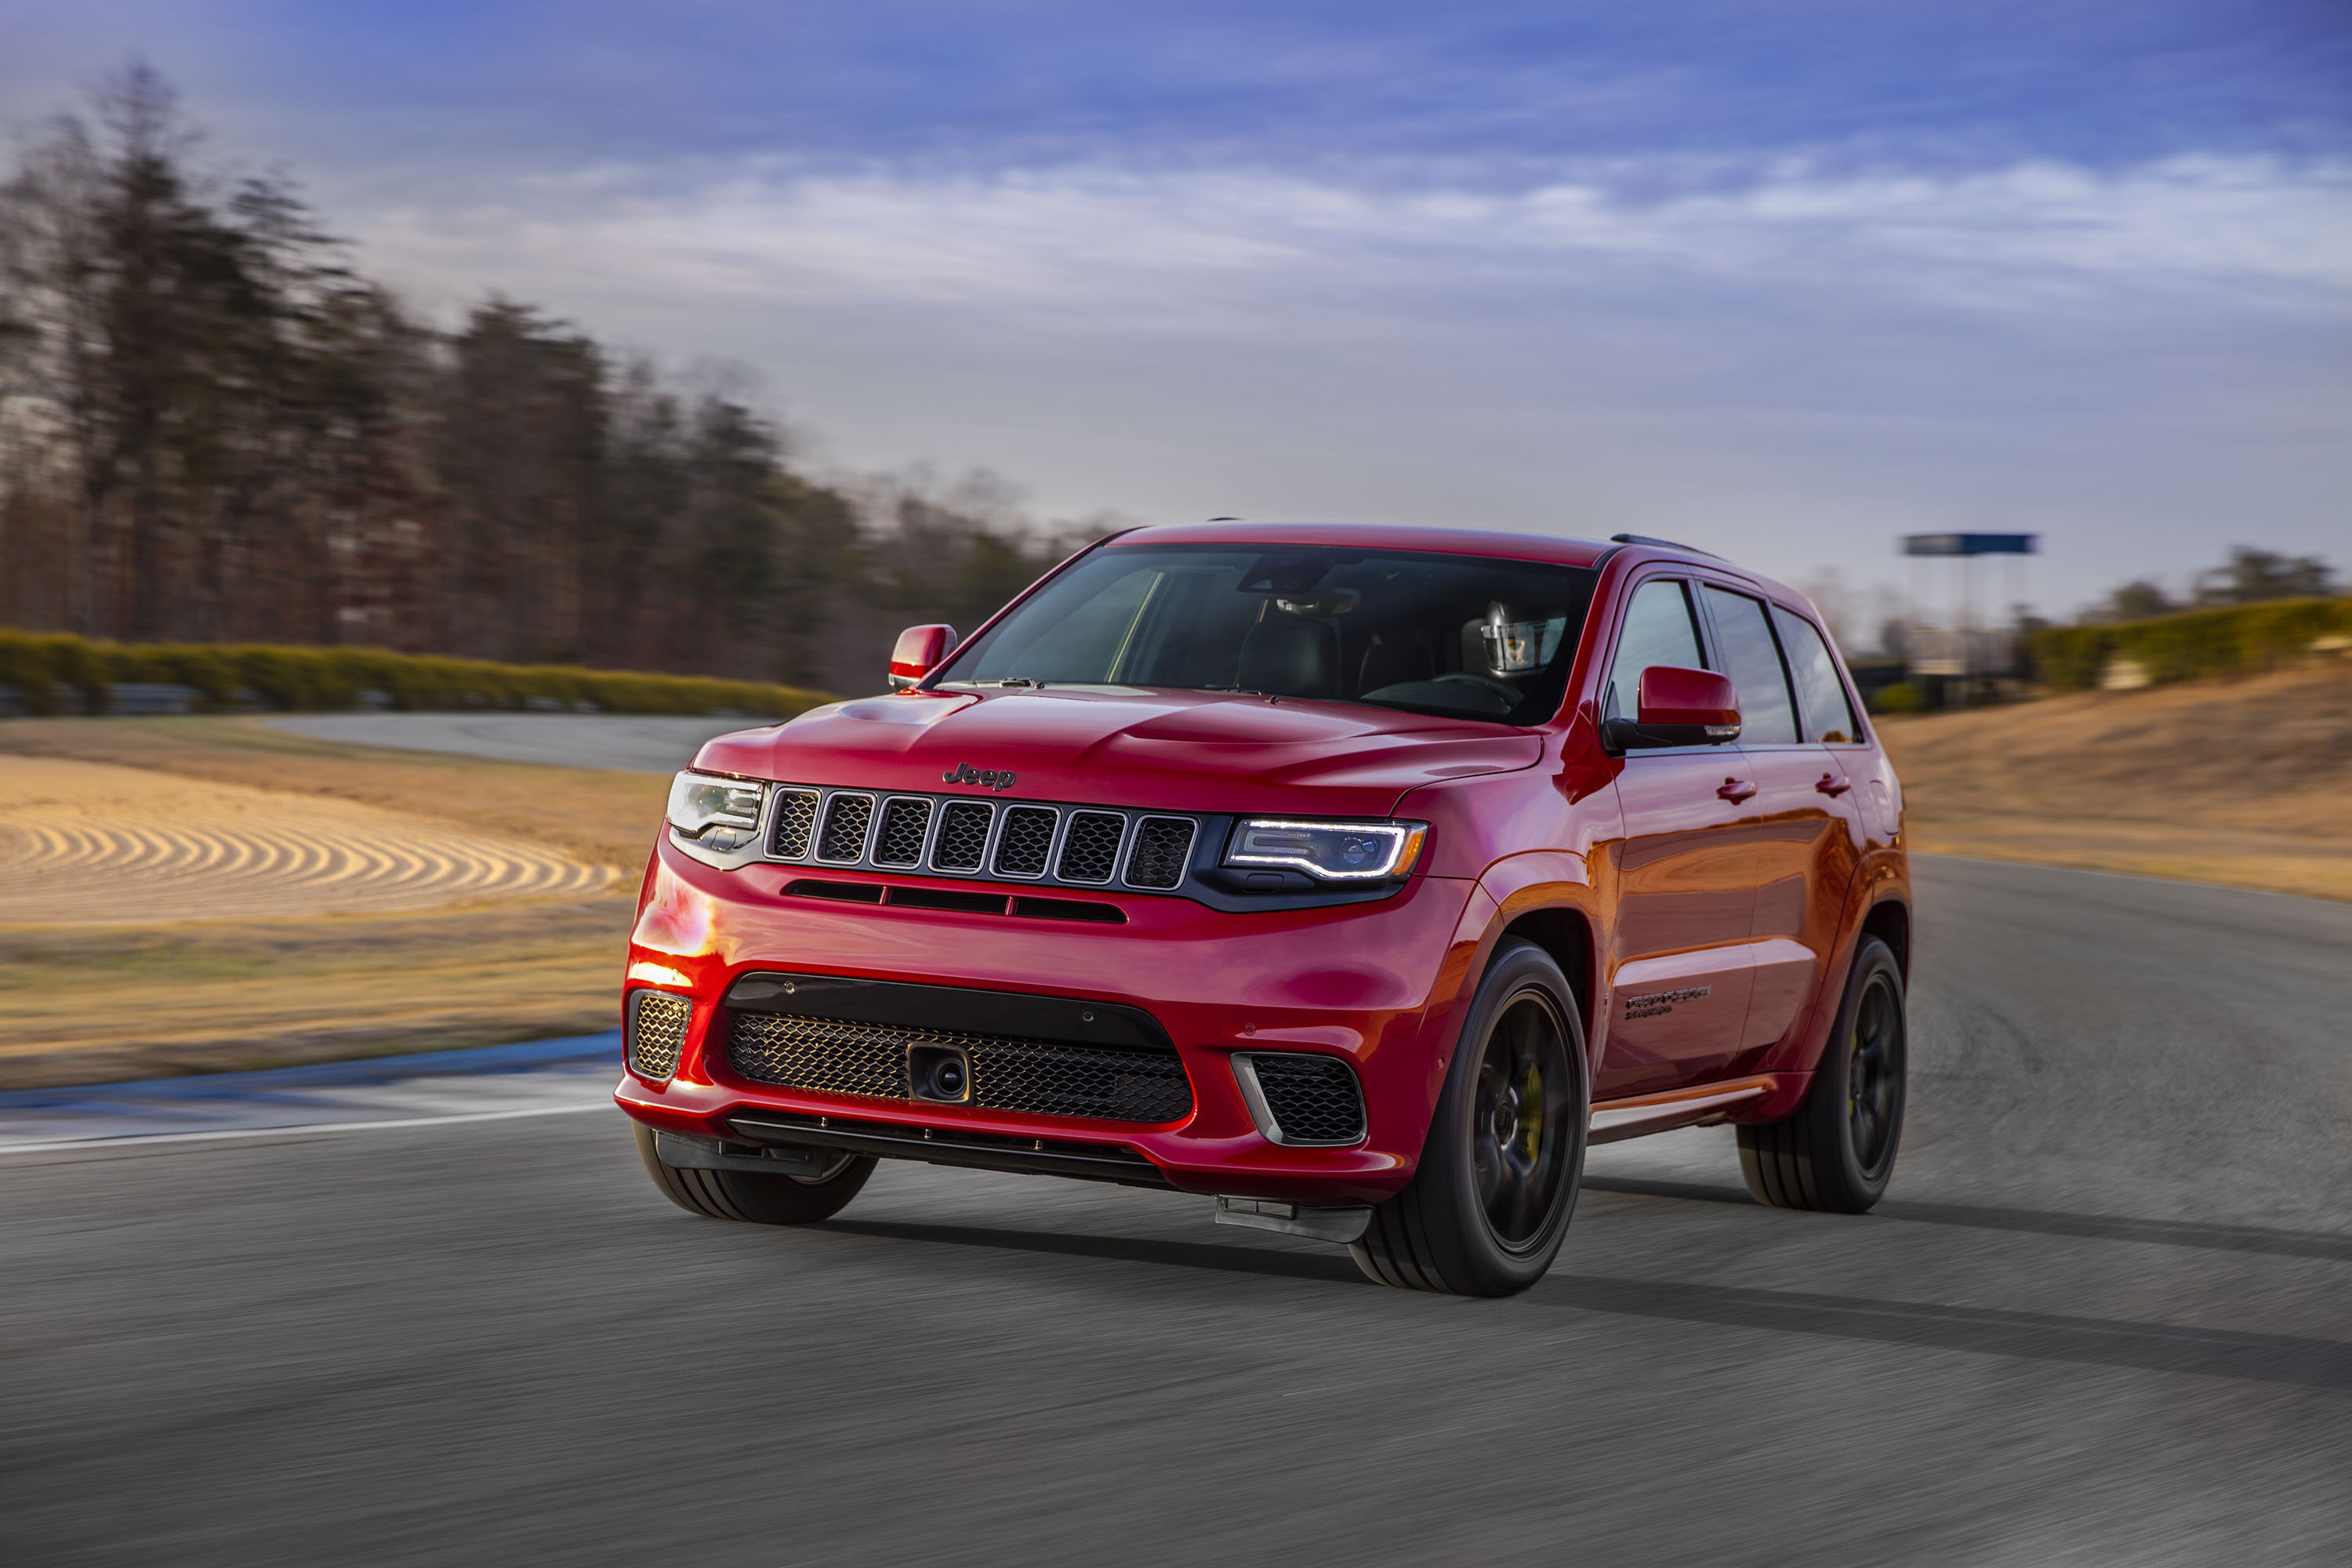 2018 Jeep Grand Cherokee Supercharged Trackhawk Front Three Quarter Wallpaper 22